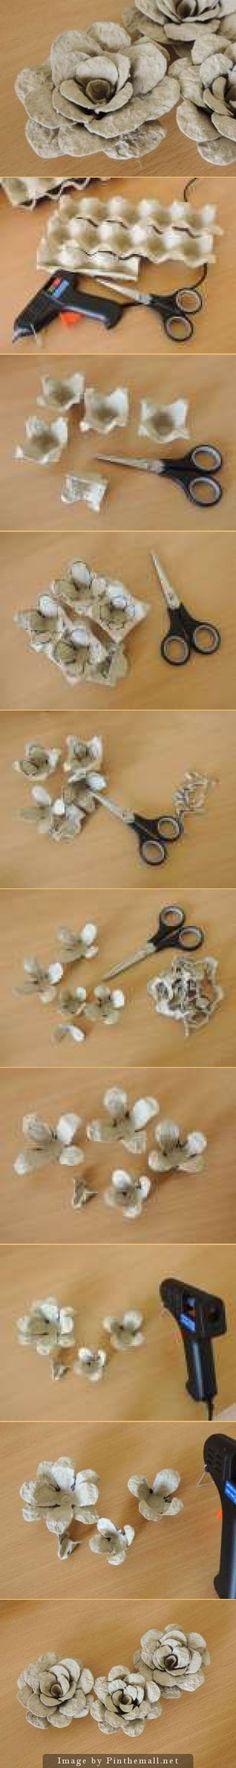 The whole detailed photo tutorial on how to make these egg carton flowers - Tuto. - - The whole detailed photo tutorial on how to make these egg carton flowers – Tutorial foto: trandafiri din cofraje de ouă Handmade Flowers, Diy Flowers, Fabric Flowers, Paper Flowers, Hobbies And Crafts, Fun Crafts, Diy And Crafts, Arts And Crafts, Upcycled Crafts